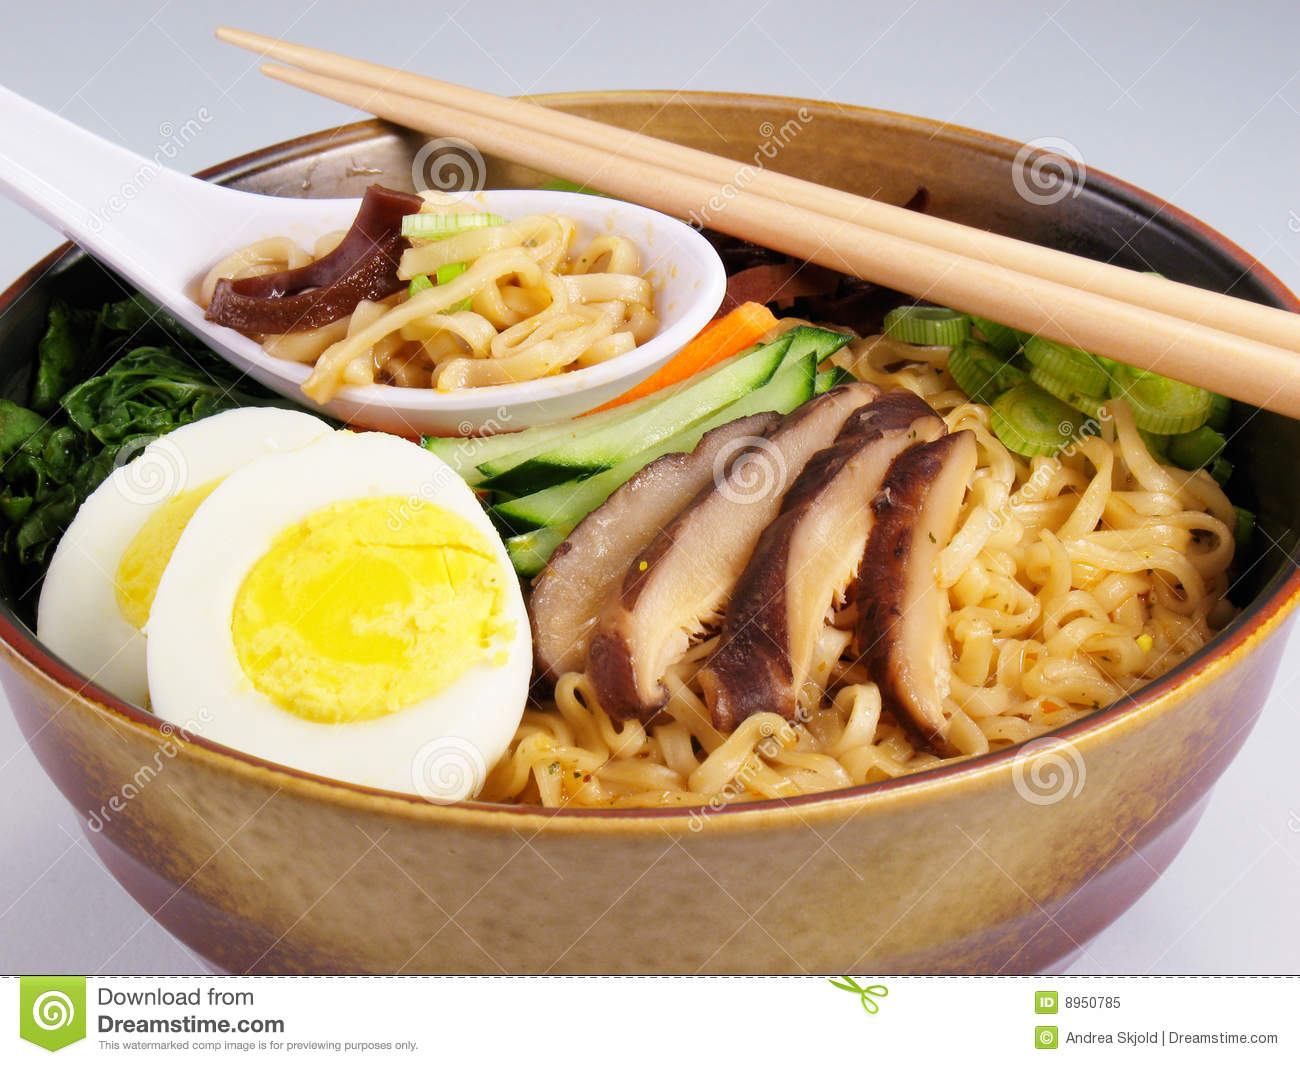 Ramen soup with hard boiled egg, vegetables, and mushrooms.